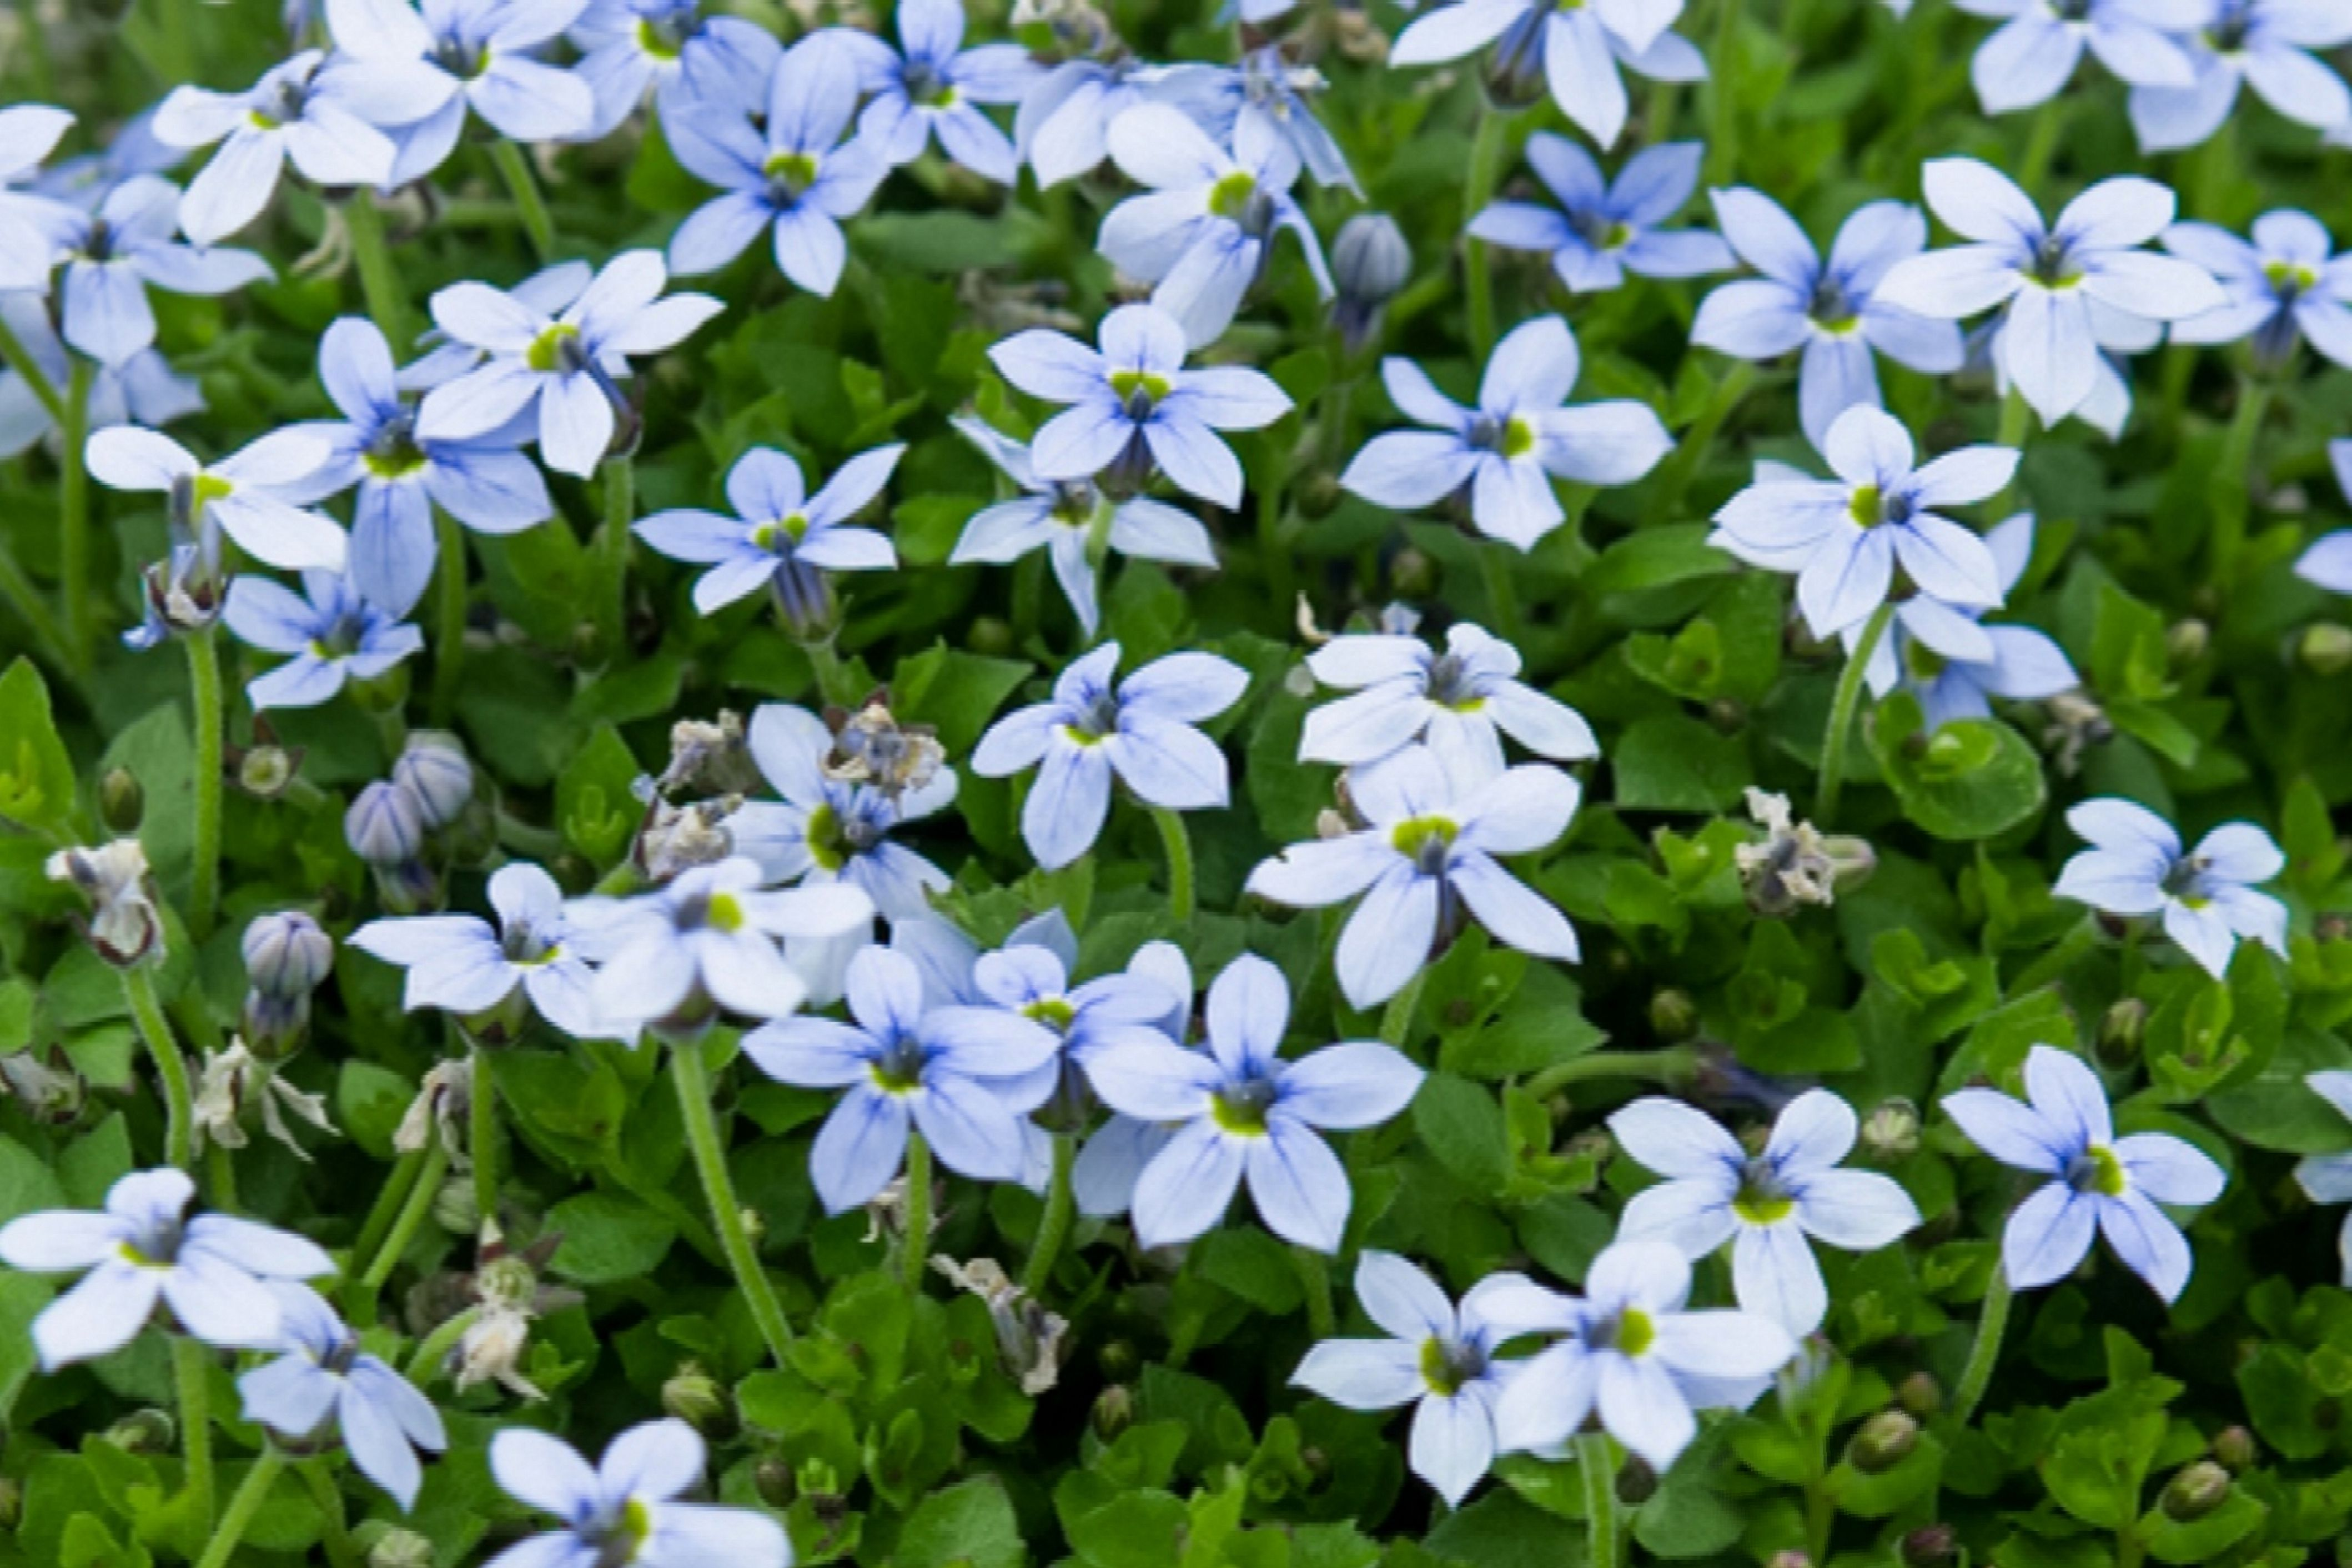 How to Grow and Care for Blue Star Creeper